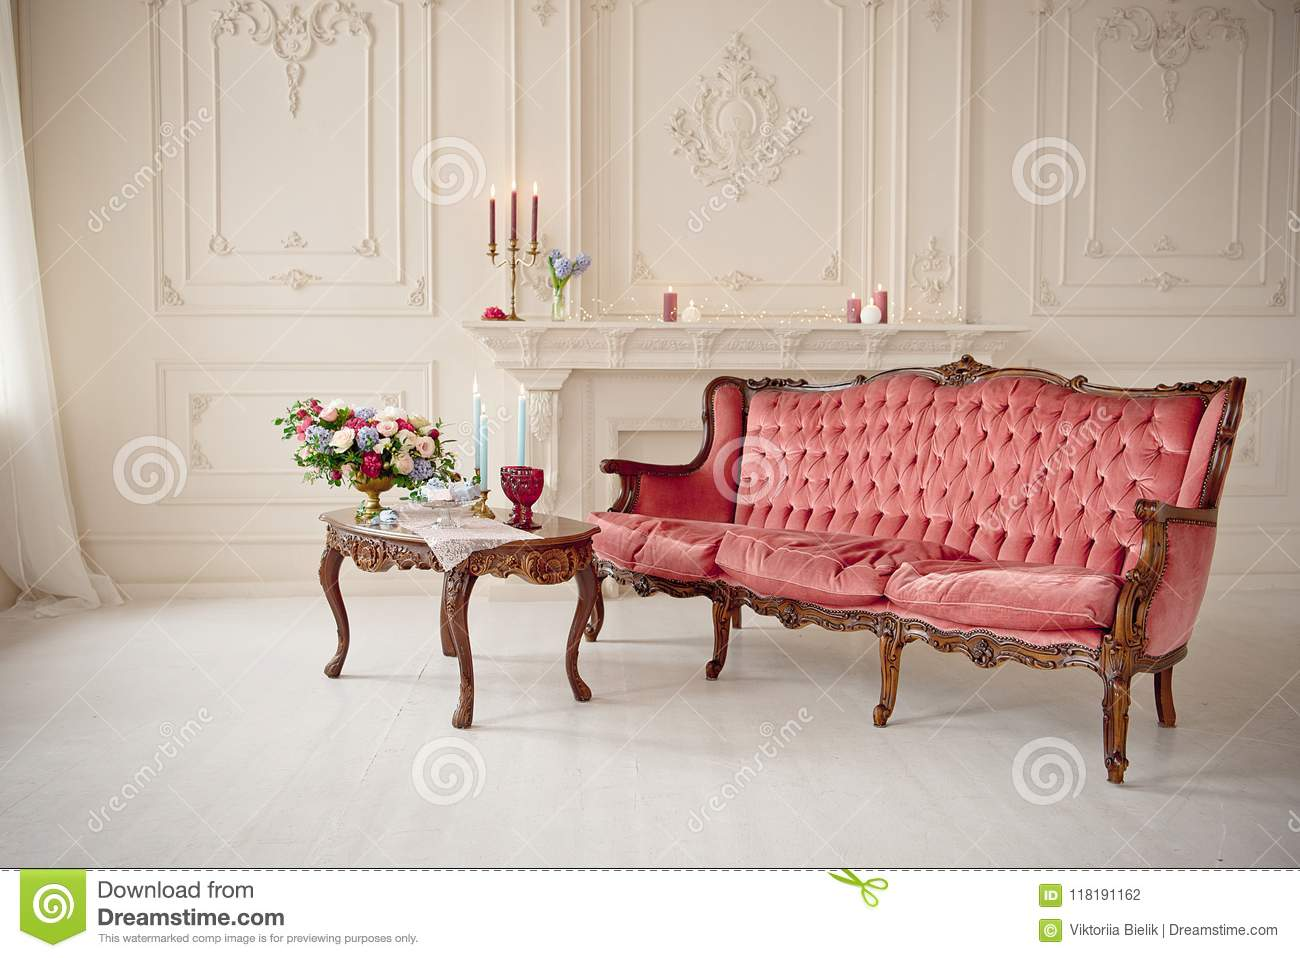 Swell Baroque Style Interior With Red Luxury Sofa And Table Stock Machost Co Dining Chair Design Ideas Machostcouk